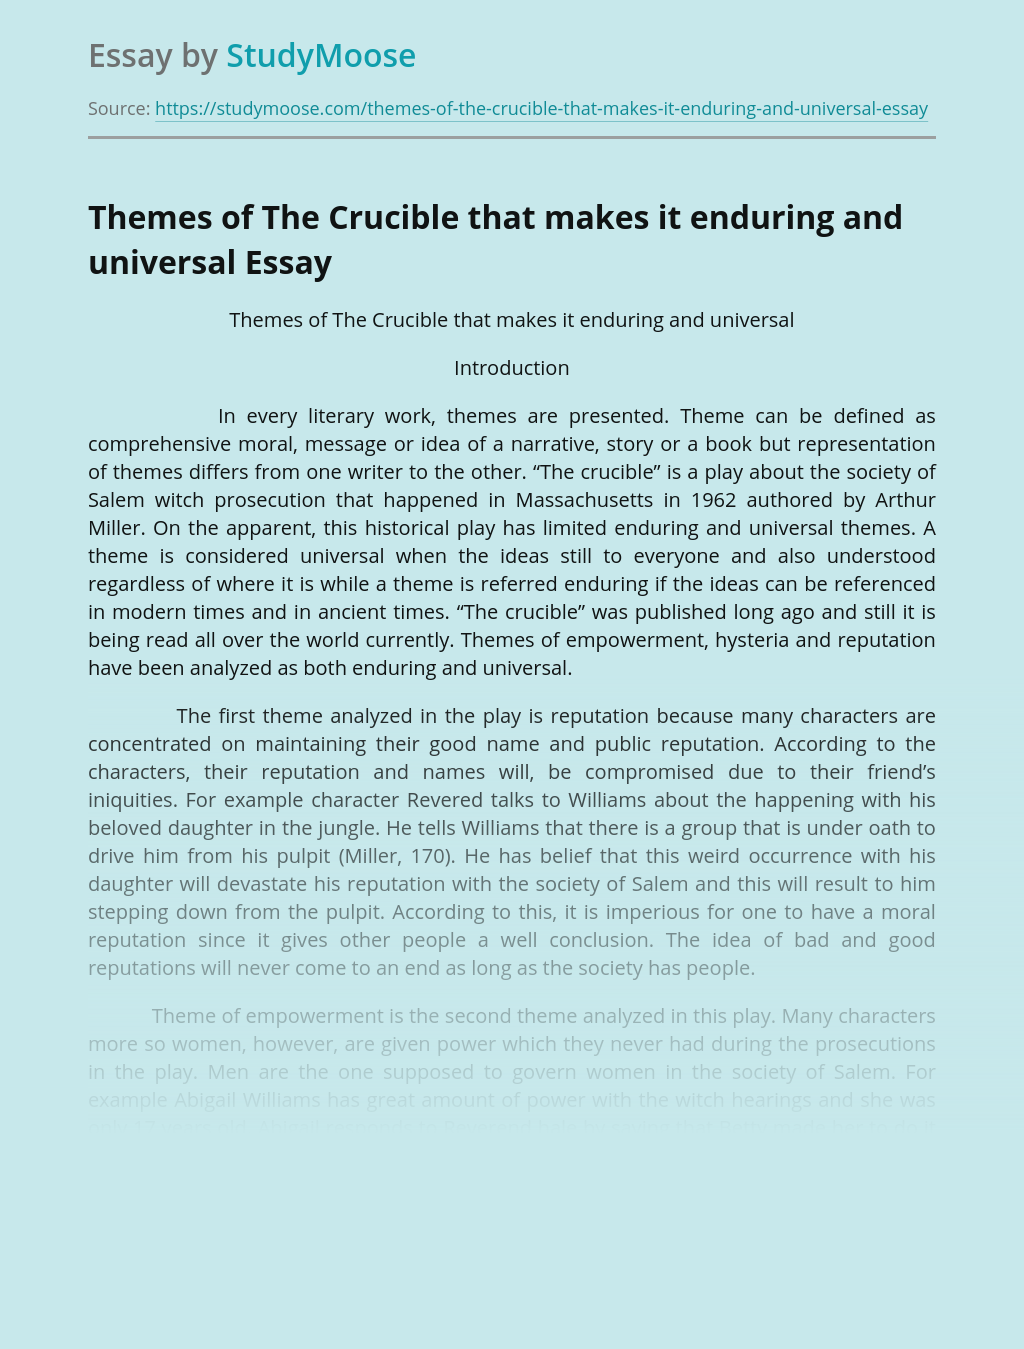 Themes of The Crucible that makes it enduring and universal